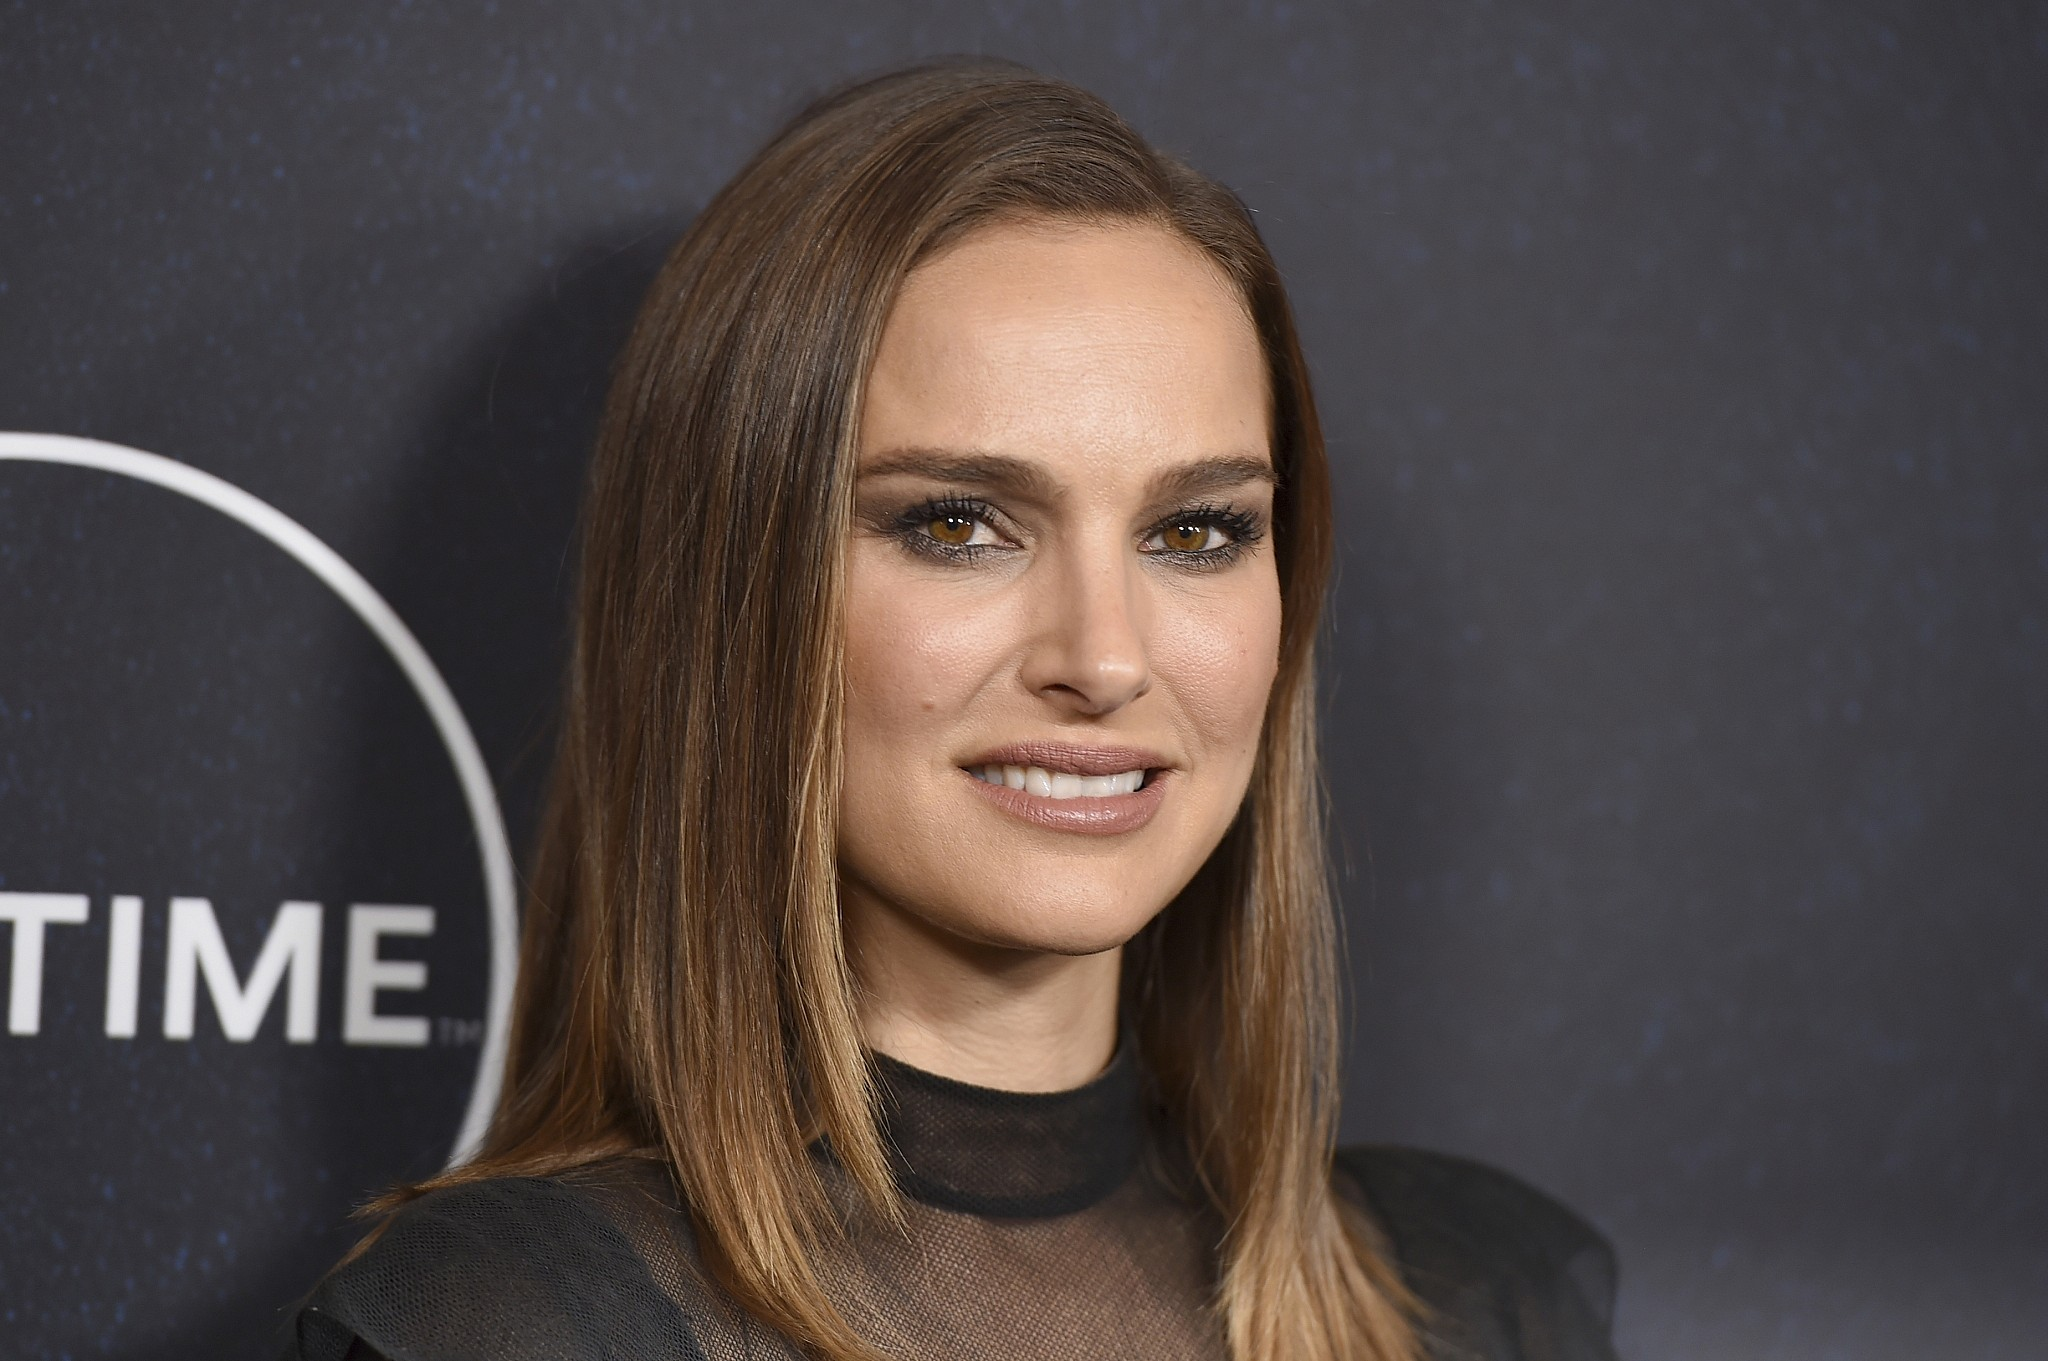 Pics Natalie Portman naked (42 foto and video), Sexy, Leaked, Boobs, in bikini 2018